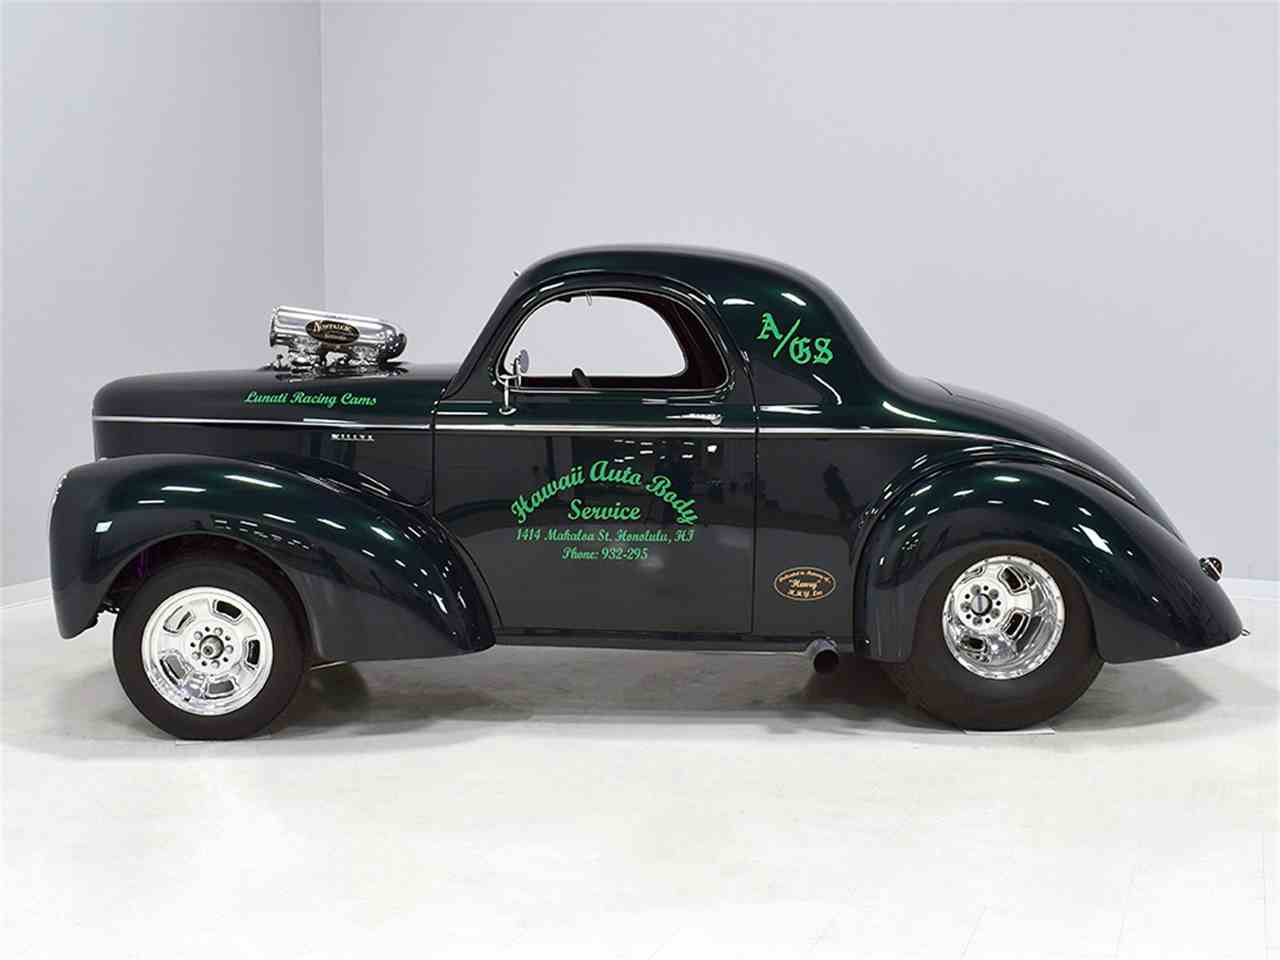 Large Picture of 1940 Willys Coupe located in Ohio - $99,900.00 Offered by Harwood Motors, LTD. - MZB9